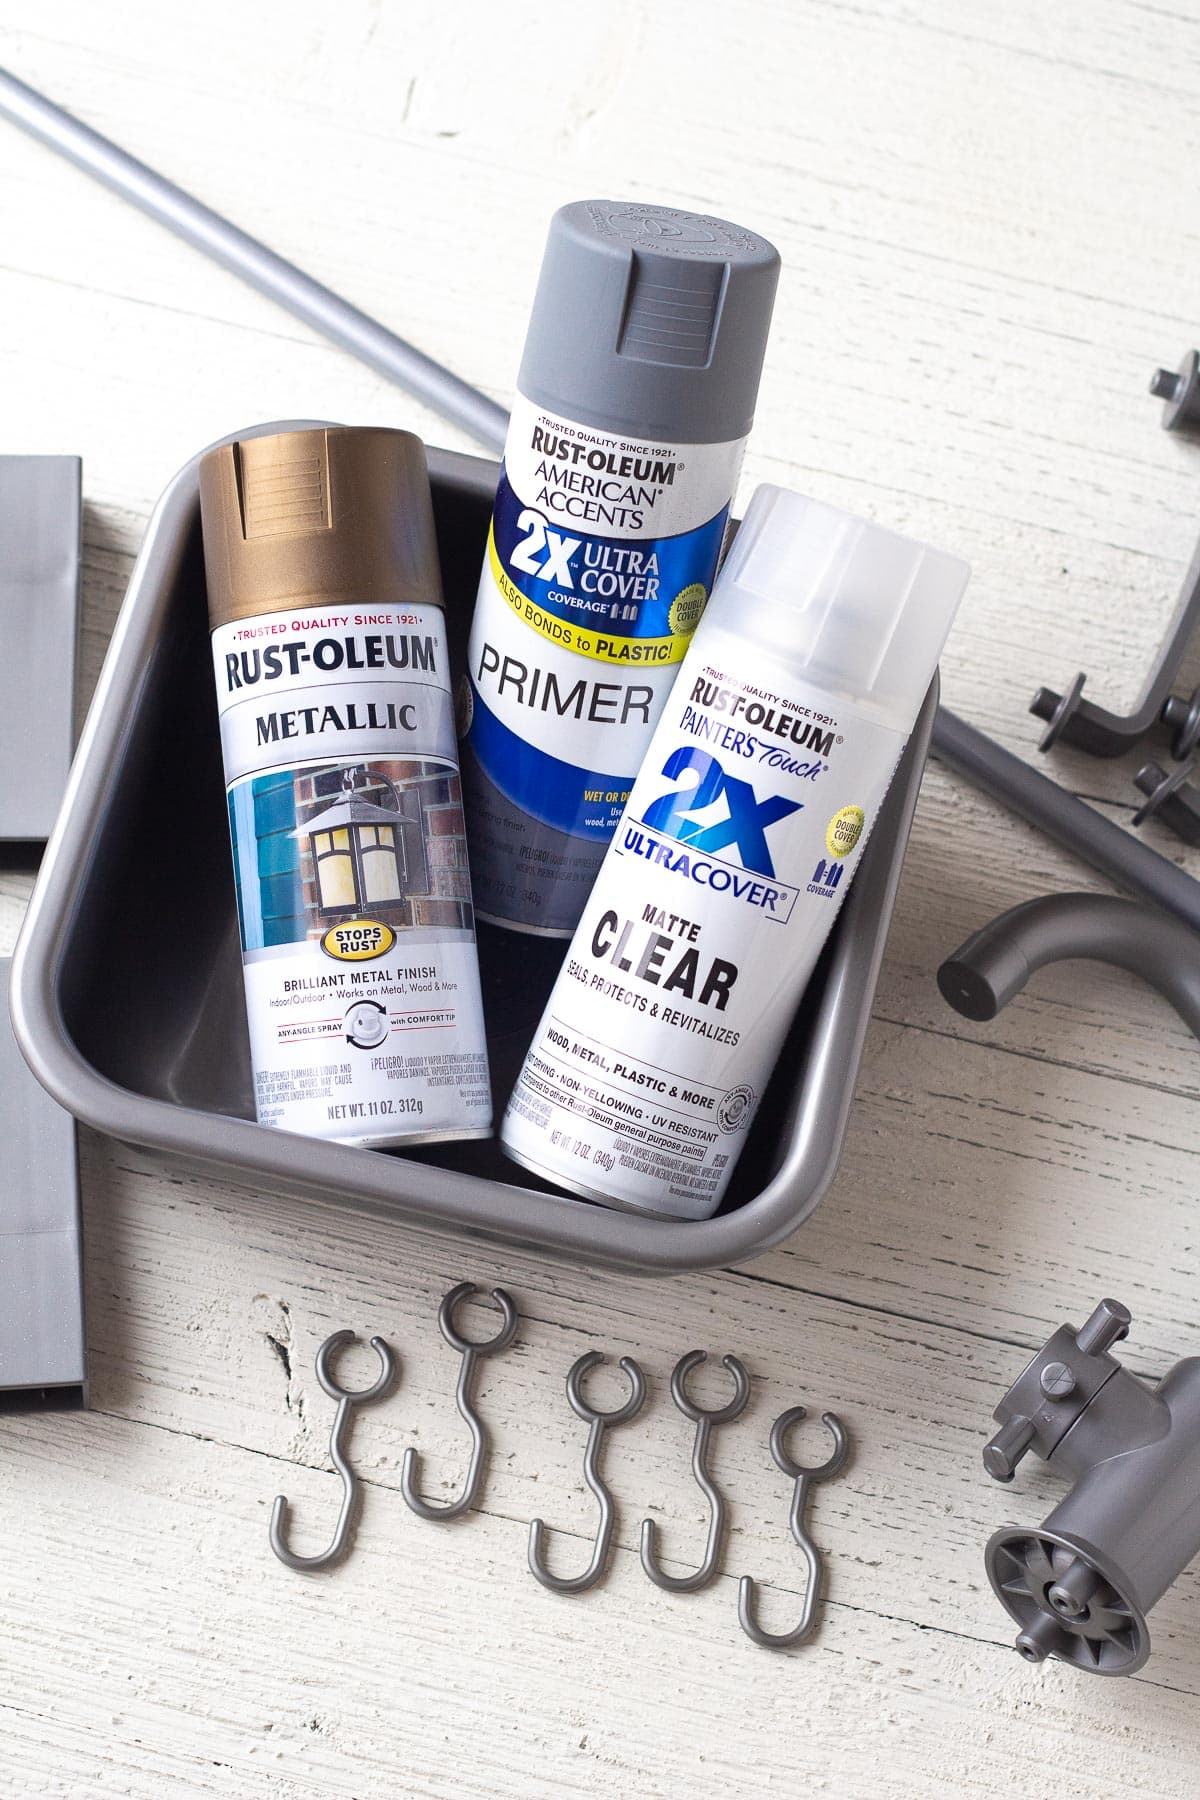 Three cans of spray paint and accessories for the IKEA DUKTIG kitchen set.